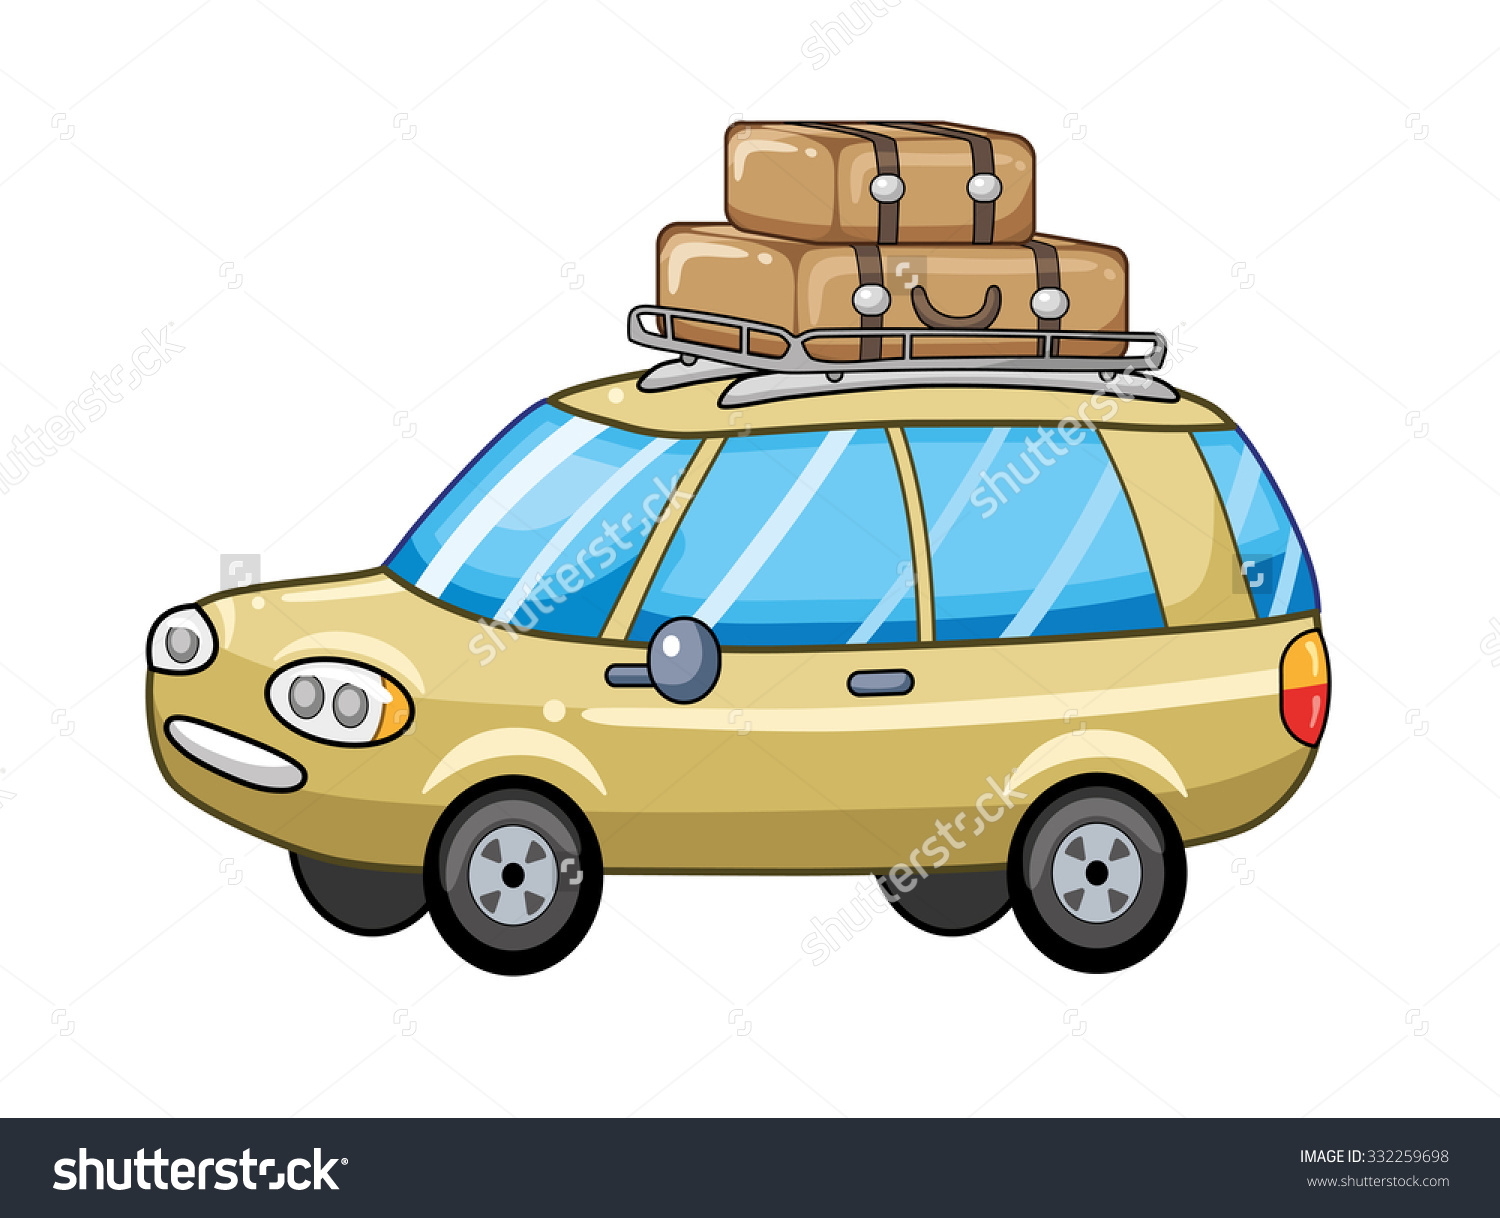 Travel Car With Suitcases On A Luggage Rack. Stock Vector.